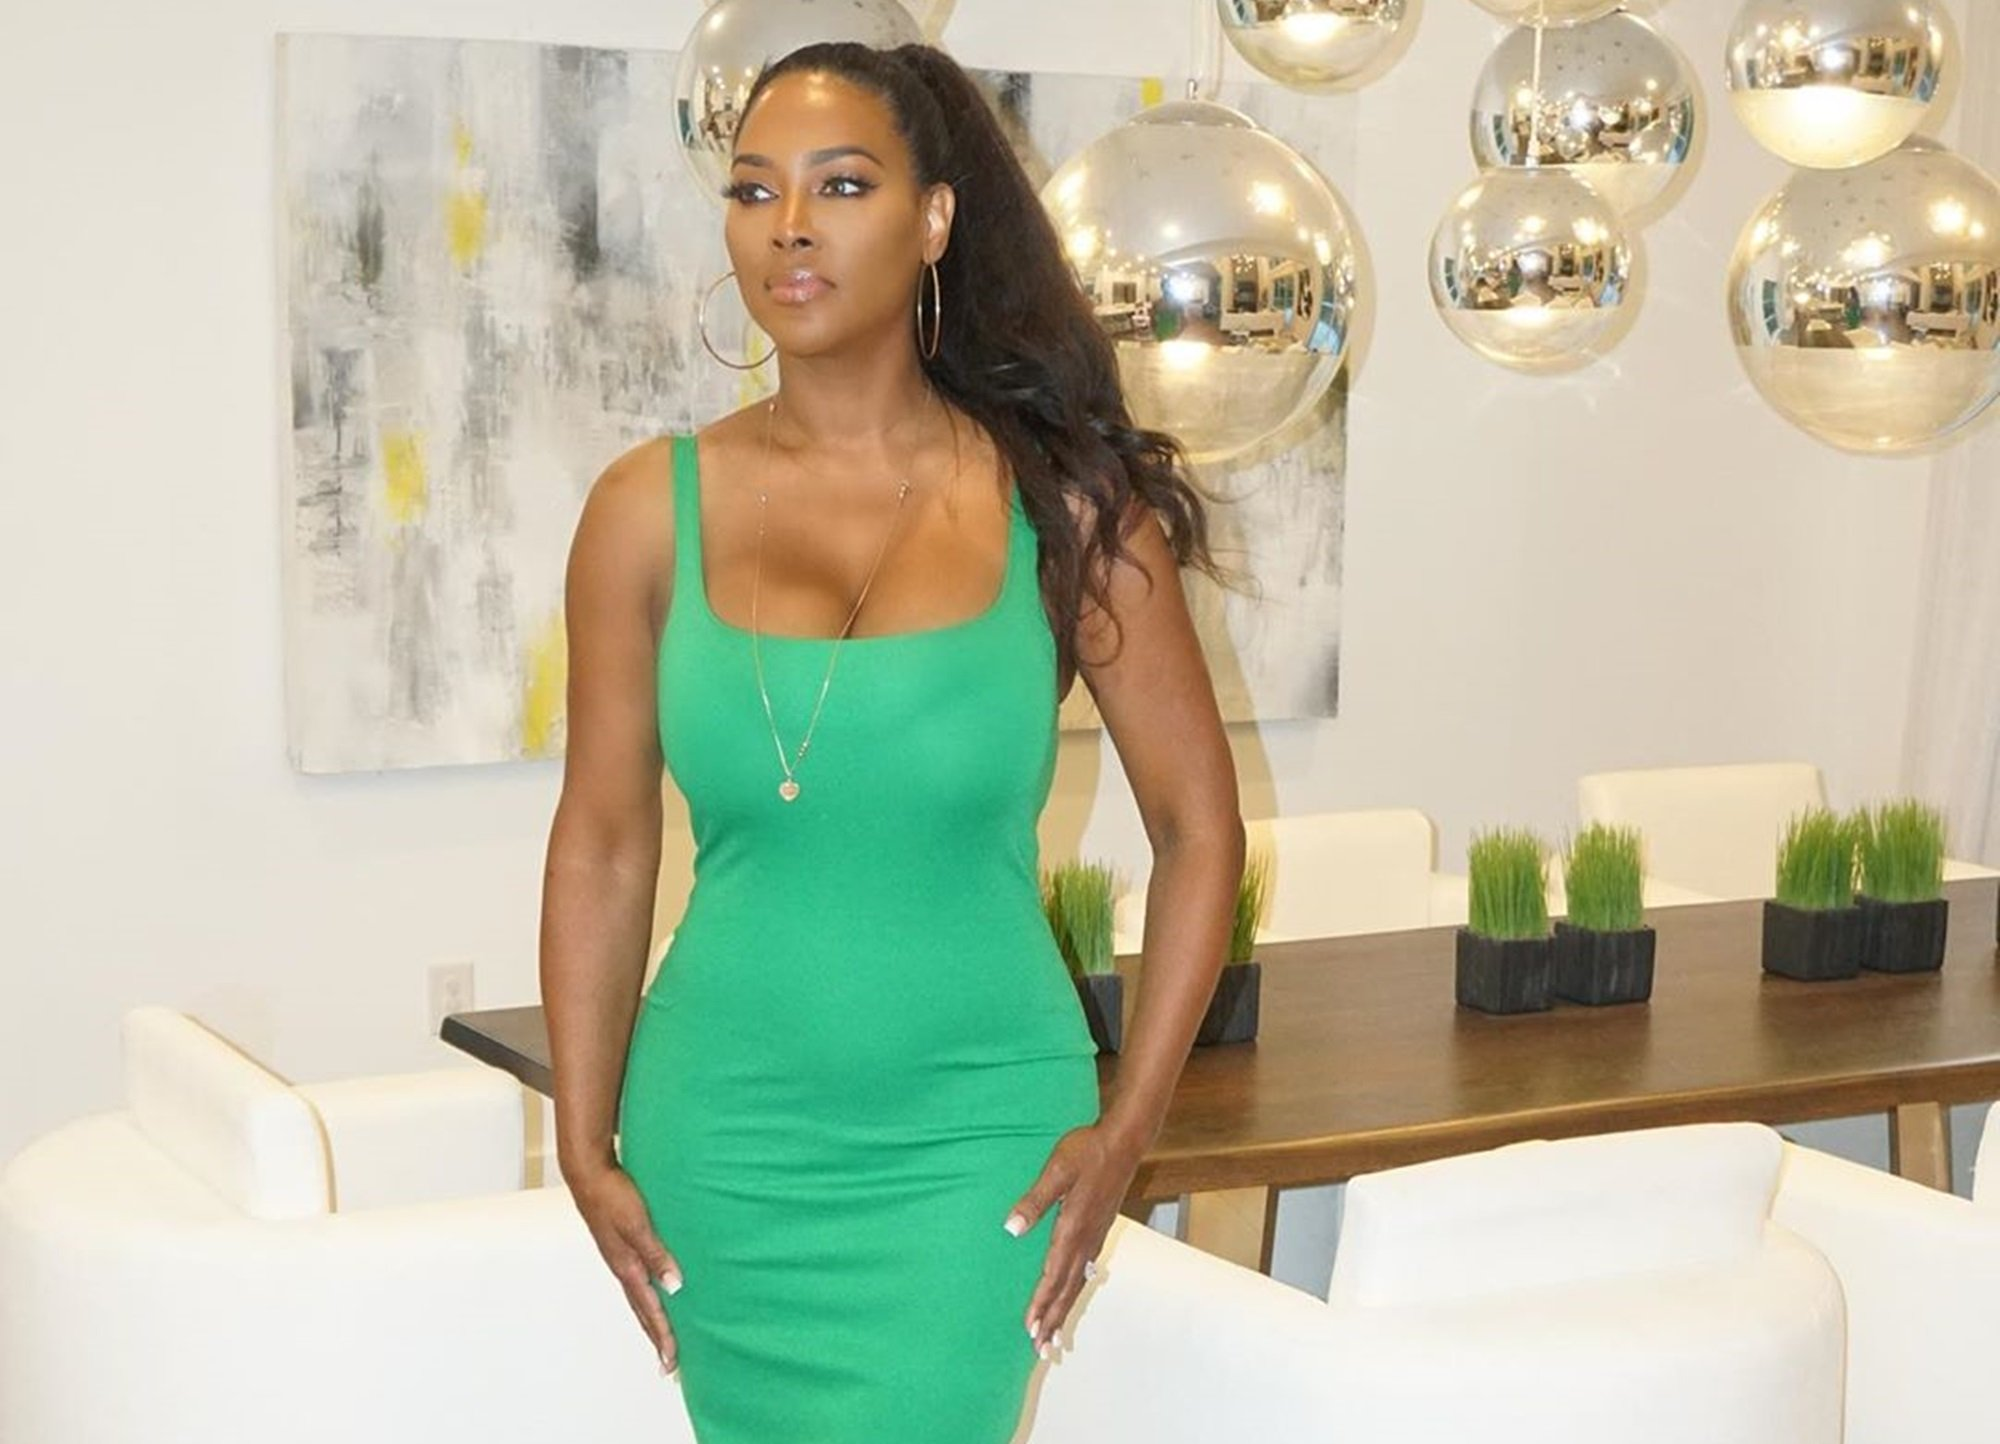 Kenya Moore's Fans Tell Her That Her Daughter, Brooklyn Daly Is The Best Joy She Could Ask For